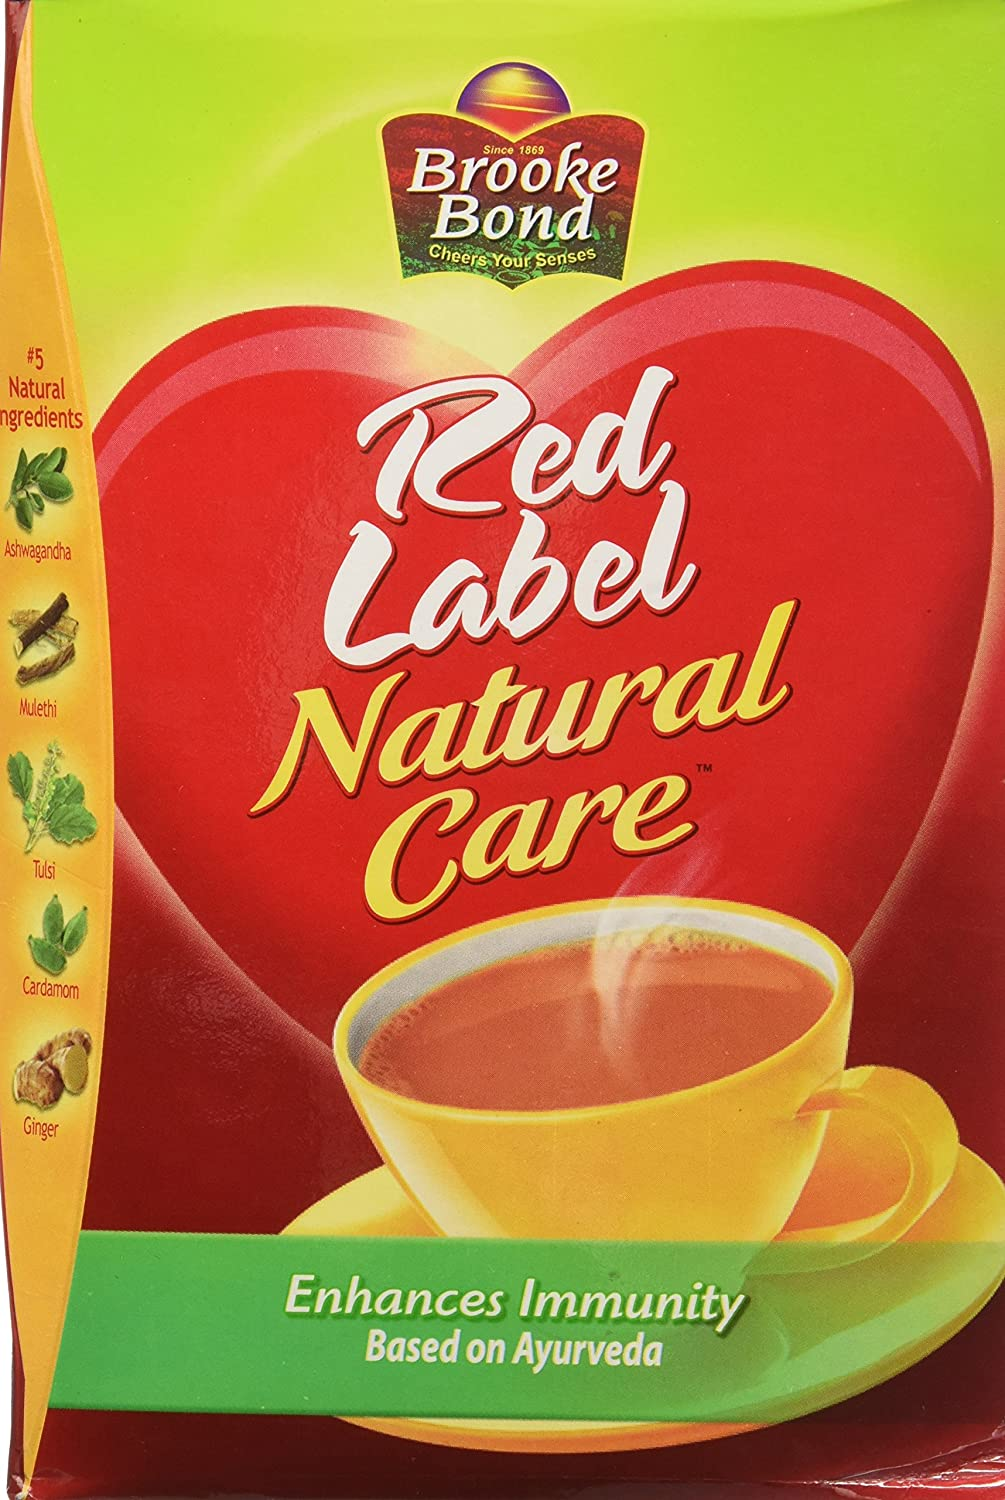 Red Label Natural Care Tea, 500g: Amazon.in: Grocery & Gourmet Foods